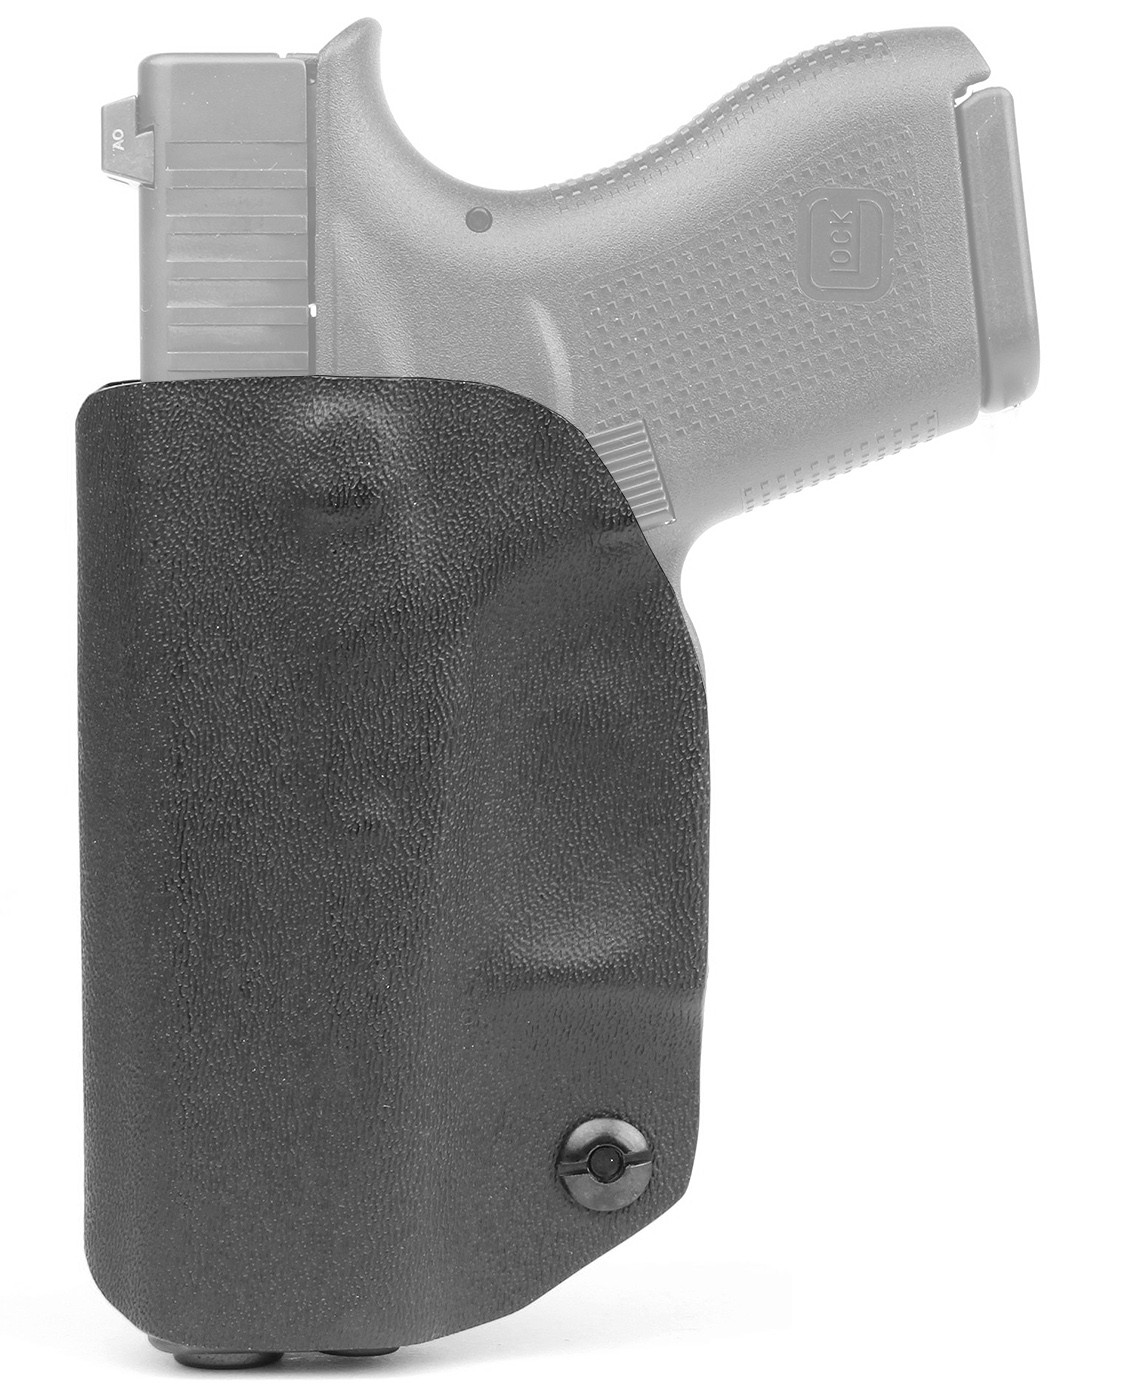 Buy Five-O Tactical Holster Kydex IWBs at SWFA.com